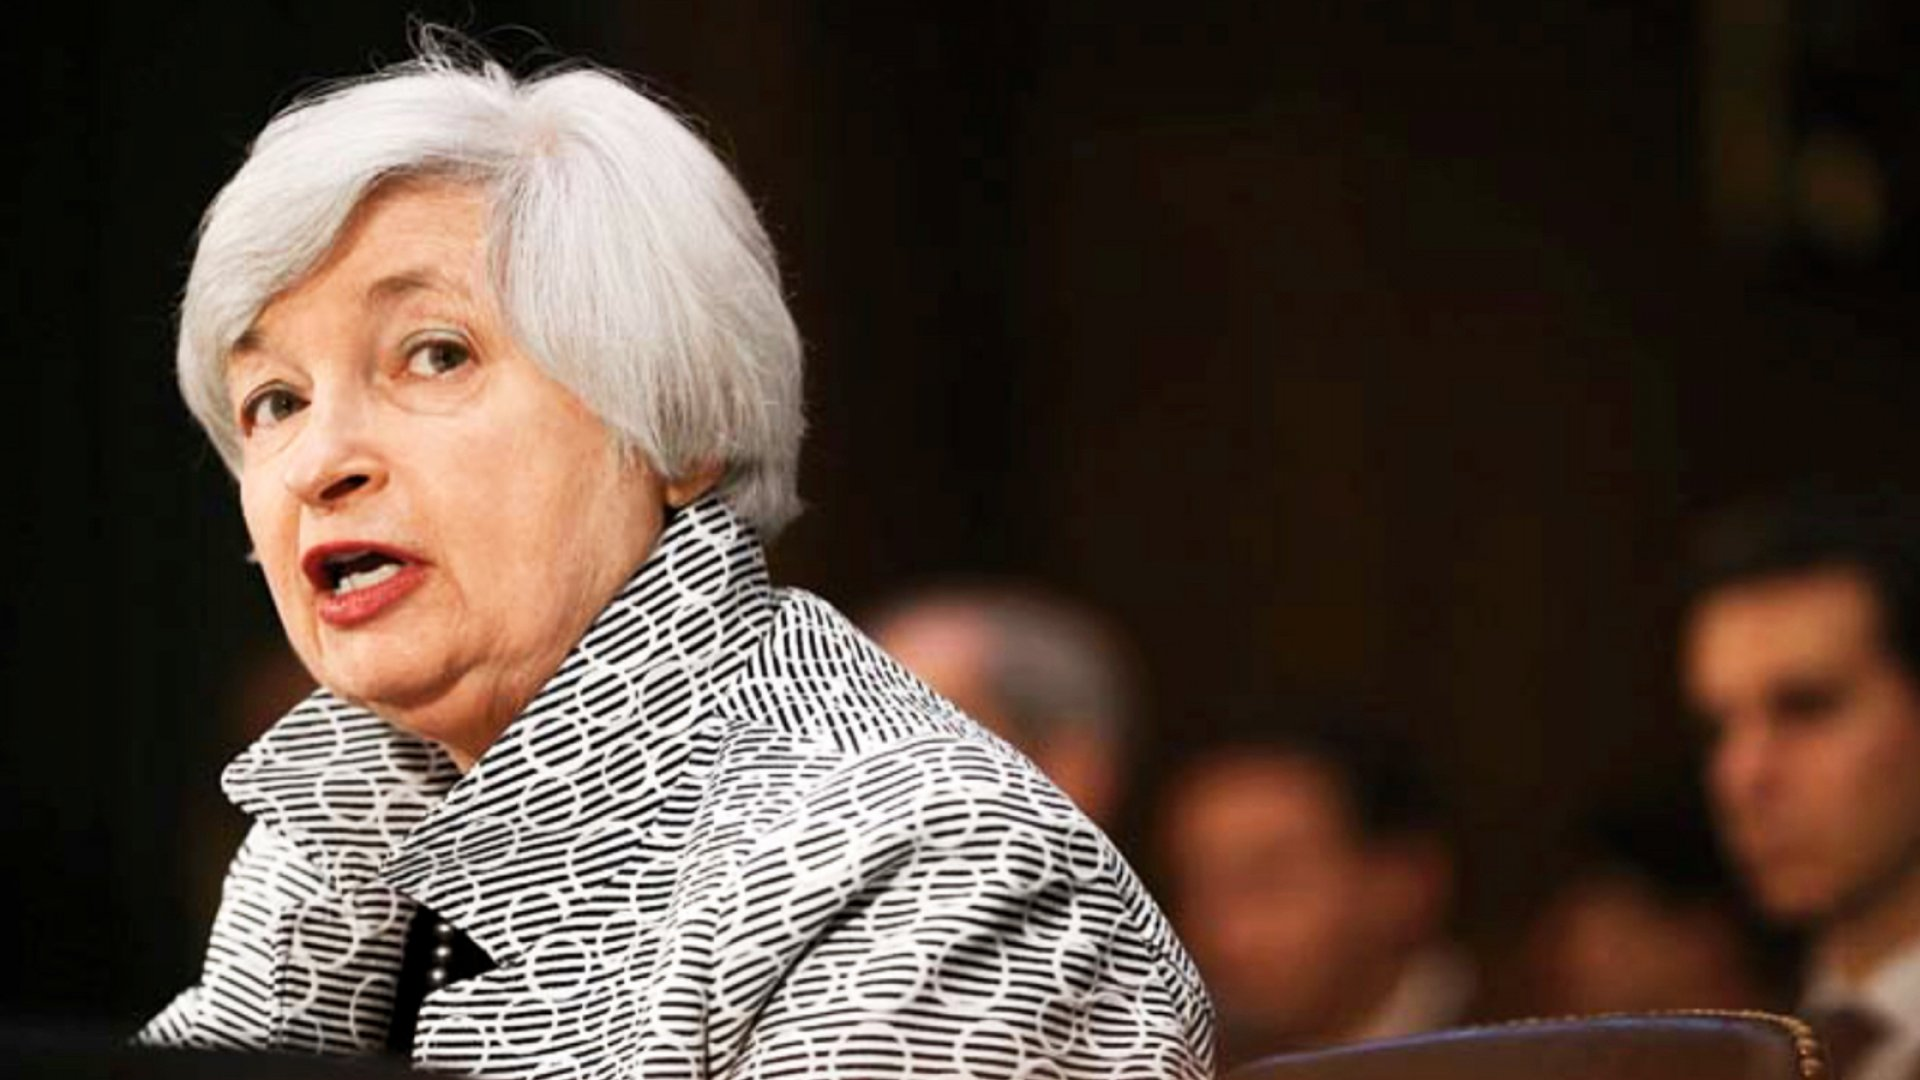 """Federal Reserve chair Janet Yellen said in November the U.S. economy """"is pretty strong and growing at a solid pace."""" On Dec. 16, 2015, the U.S. Federal Reserve raised interest rates for the first time since 2006."""